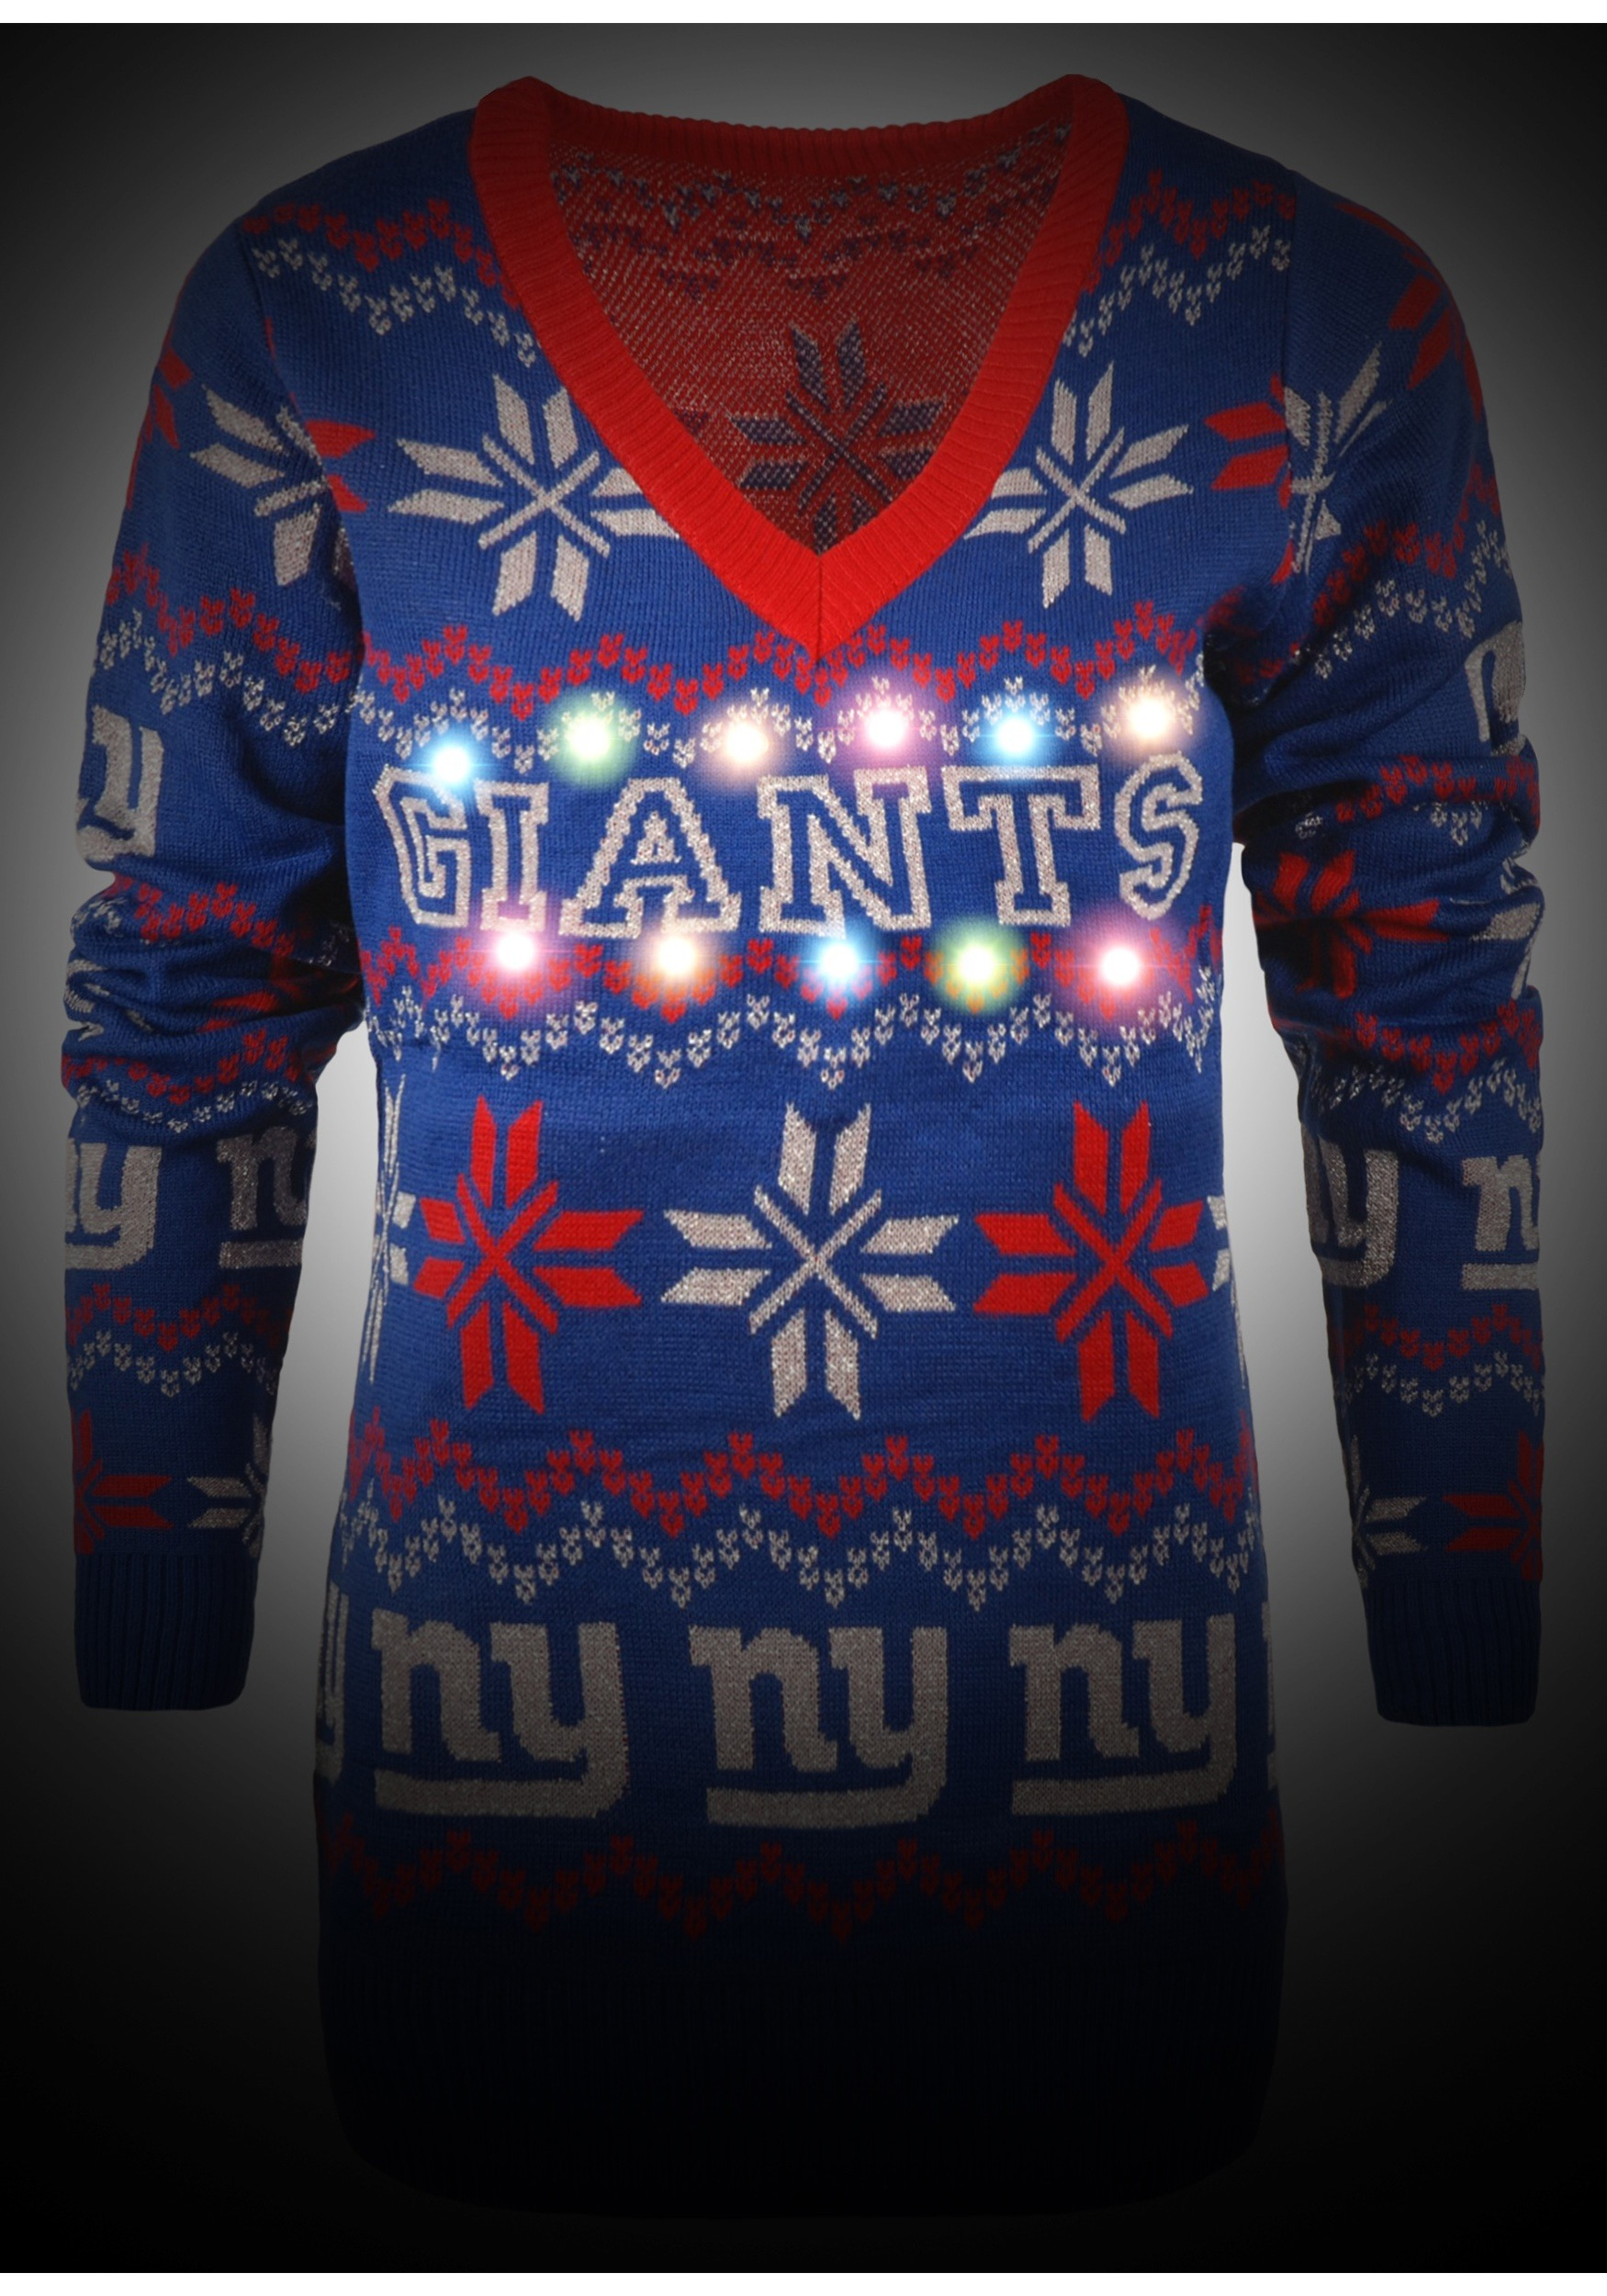 58a4d6eb5a0 Women s New York Giants Light Up V-Neck Bluetooth Ugly Christmas Sweater